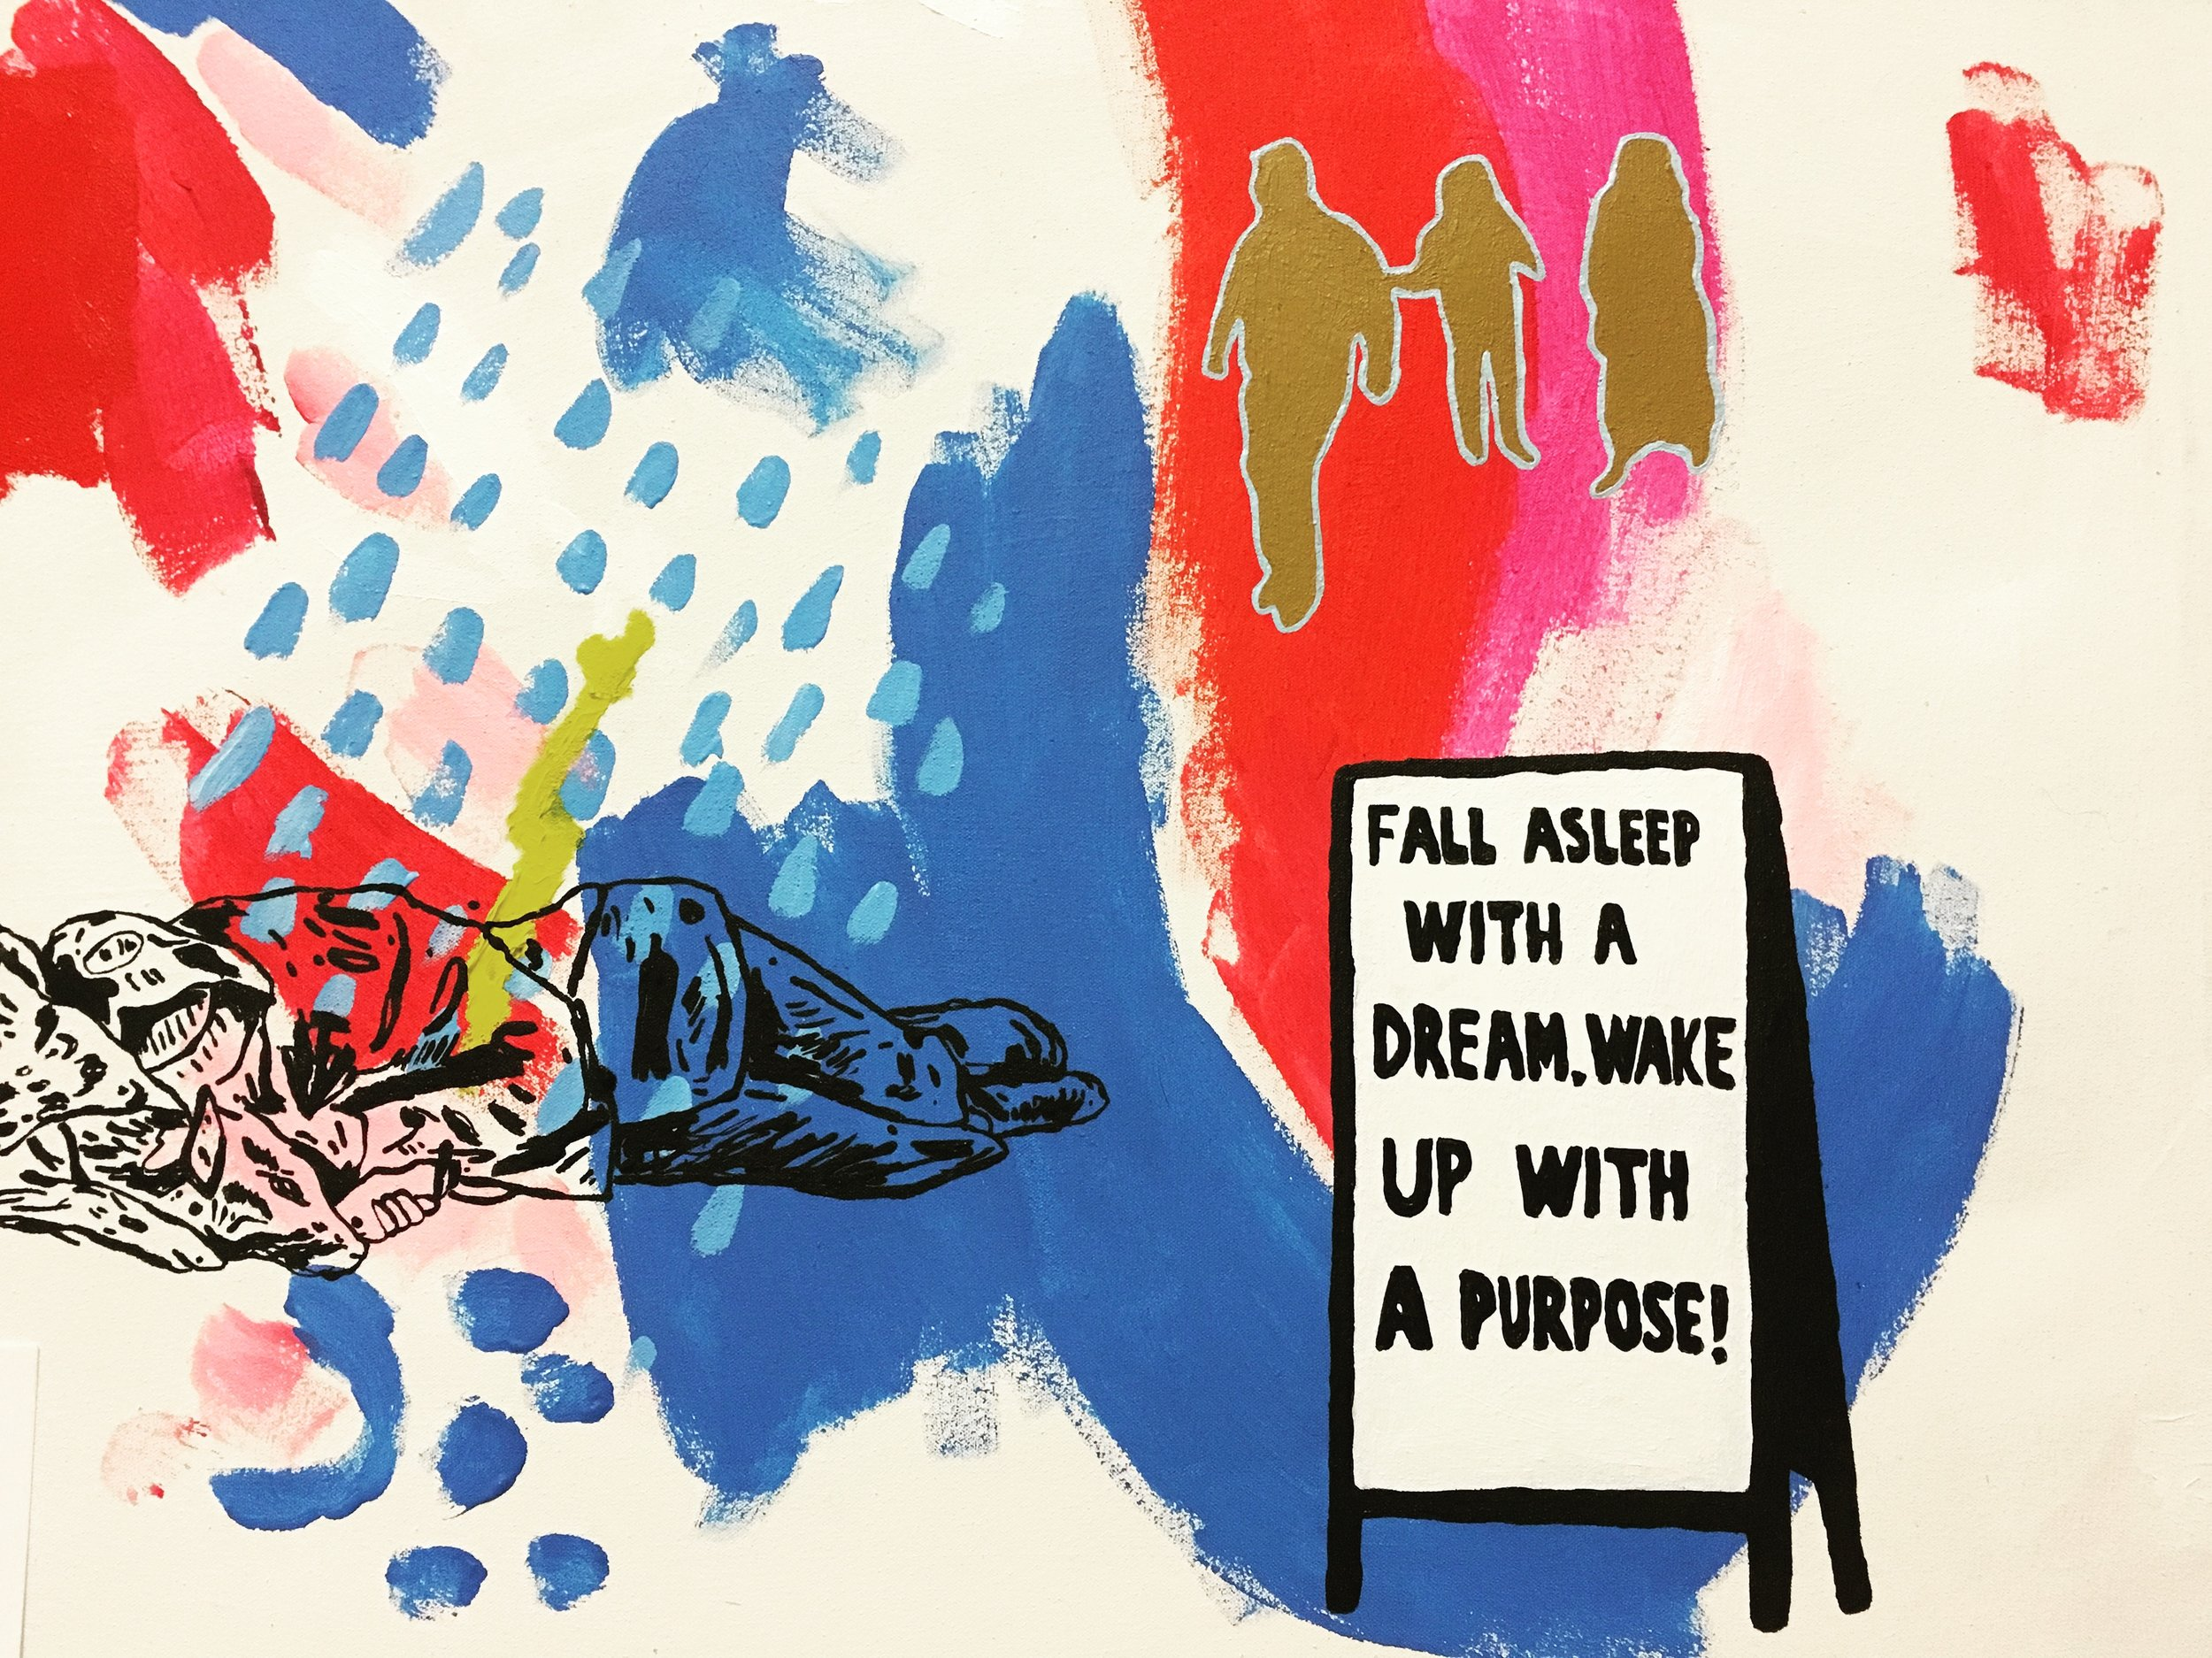 Fall Asleep With A Dream, Wake Up With a Purpose 2017